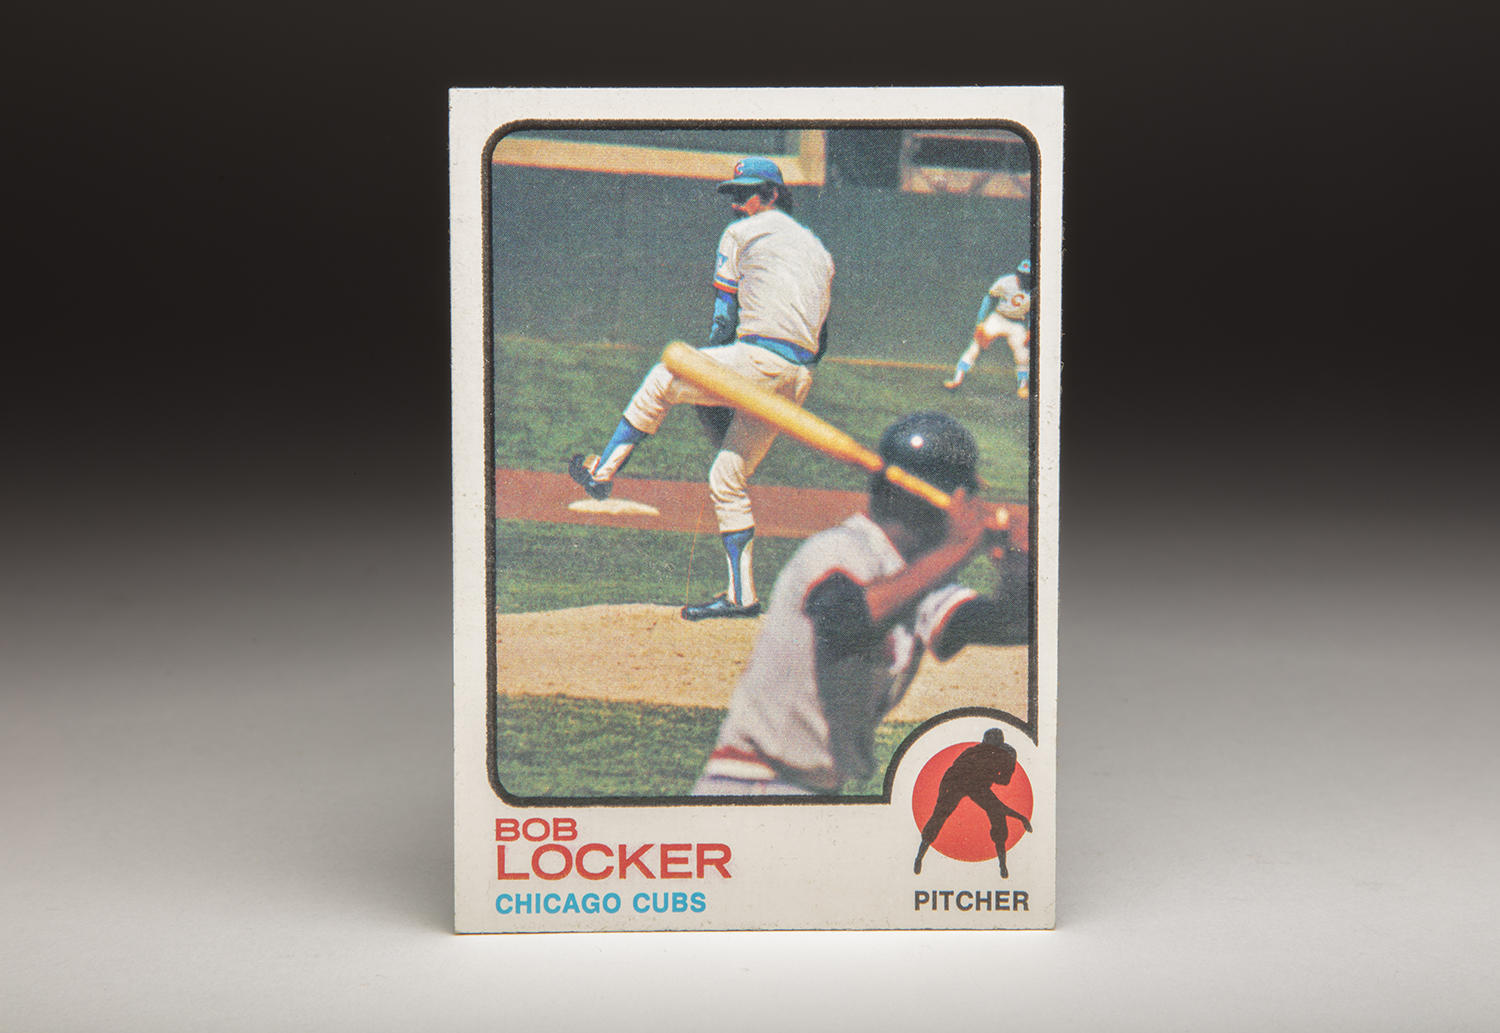 Traded from the Oakland Athletics to the Chicago Cubs after the 1972 season, Bob Locker sports an airbrushed Cubs uniform on his 1973 Topps card. (Milo Stewart Jr. / National Baseball Hall of Fame and Museum)